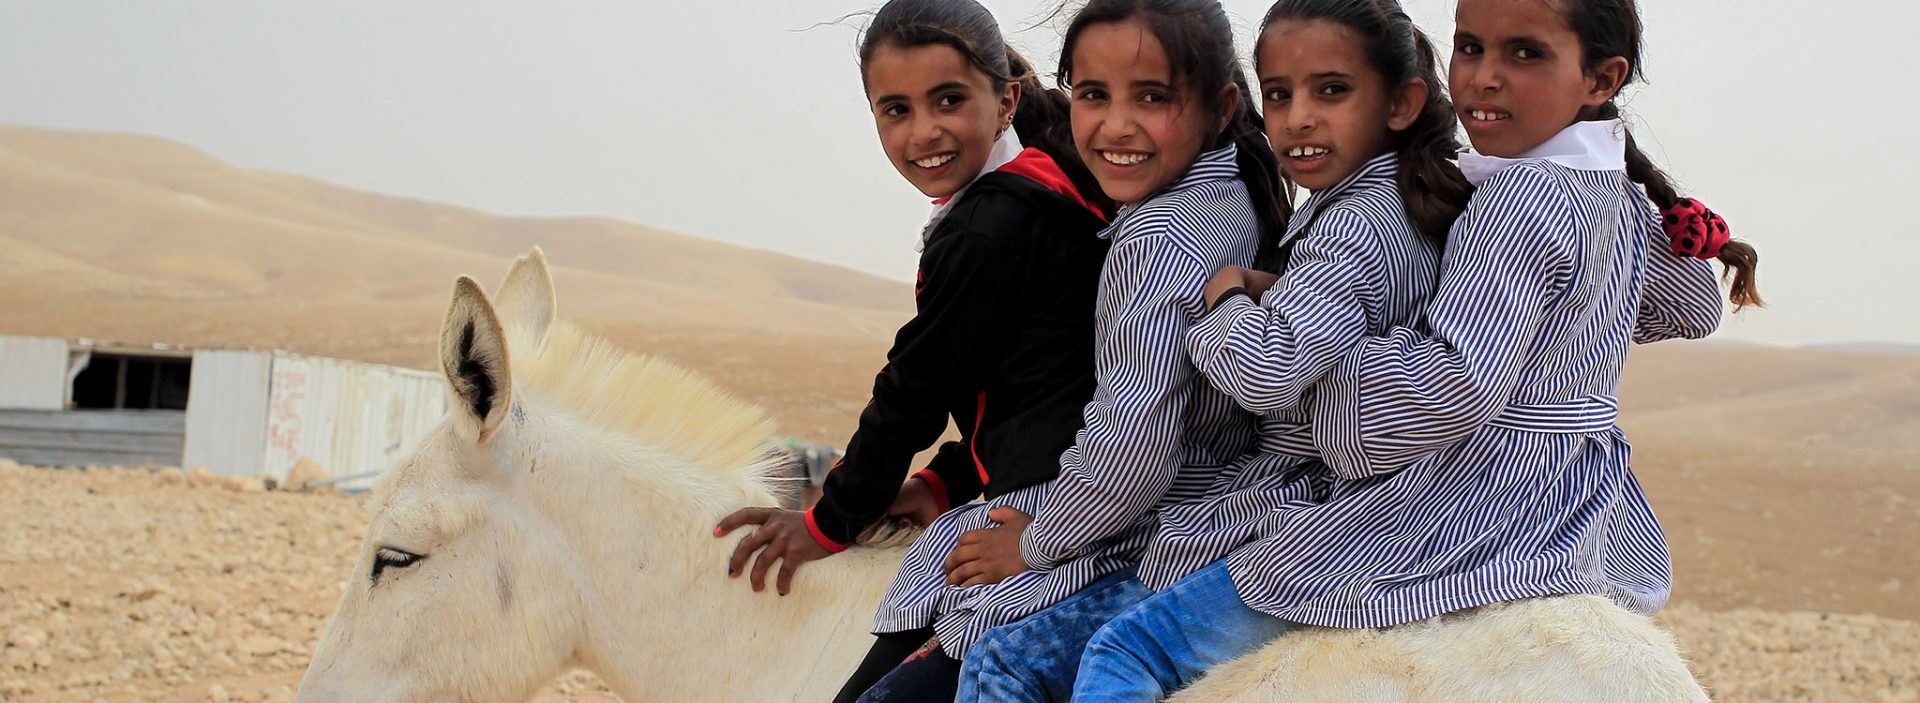 Palestinian children sitting together on a mule